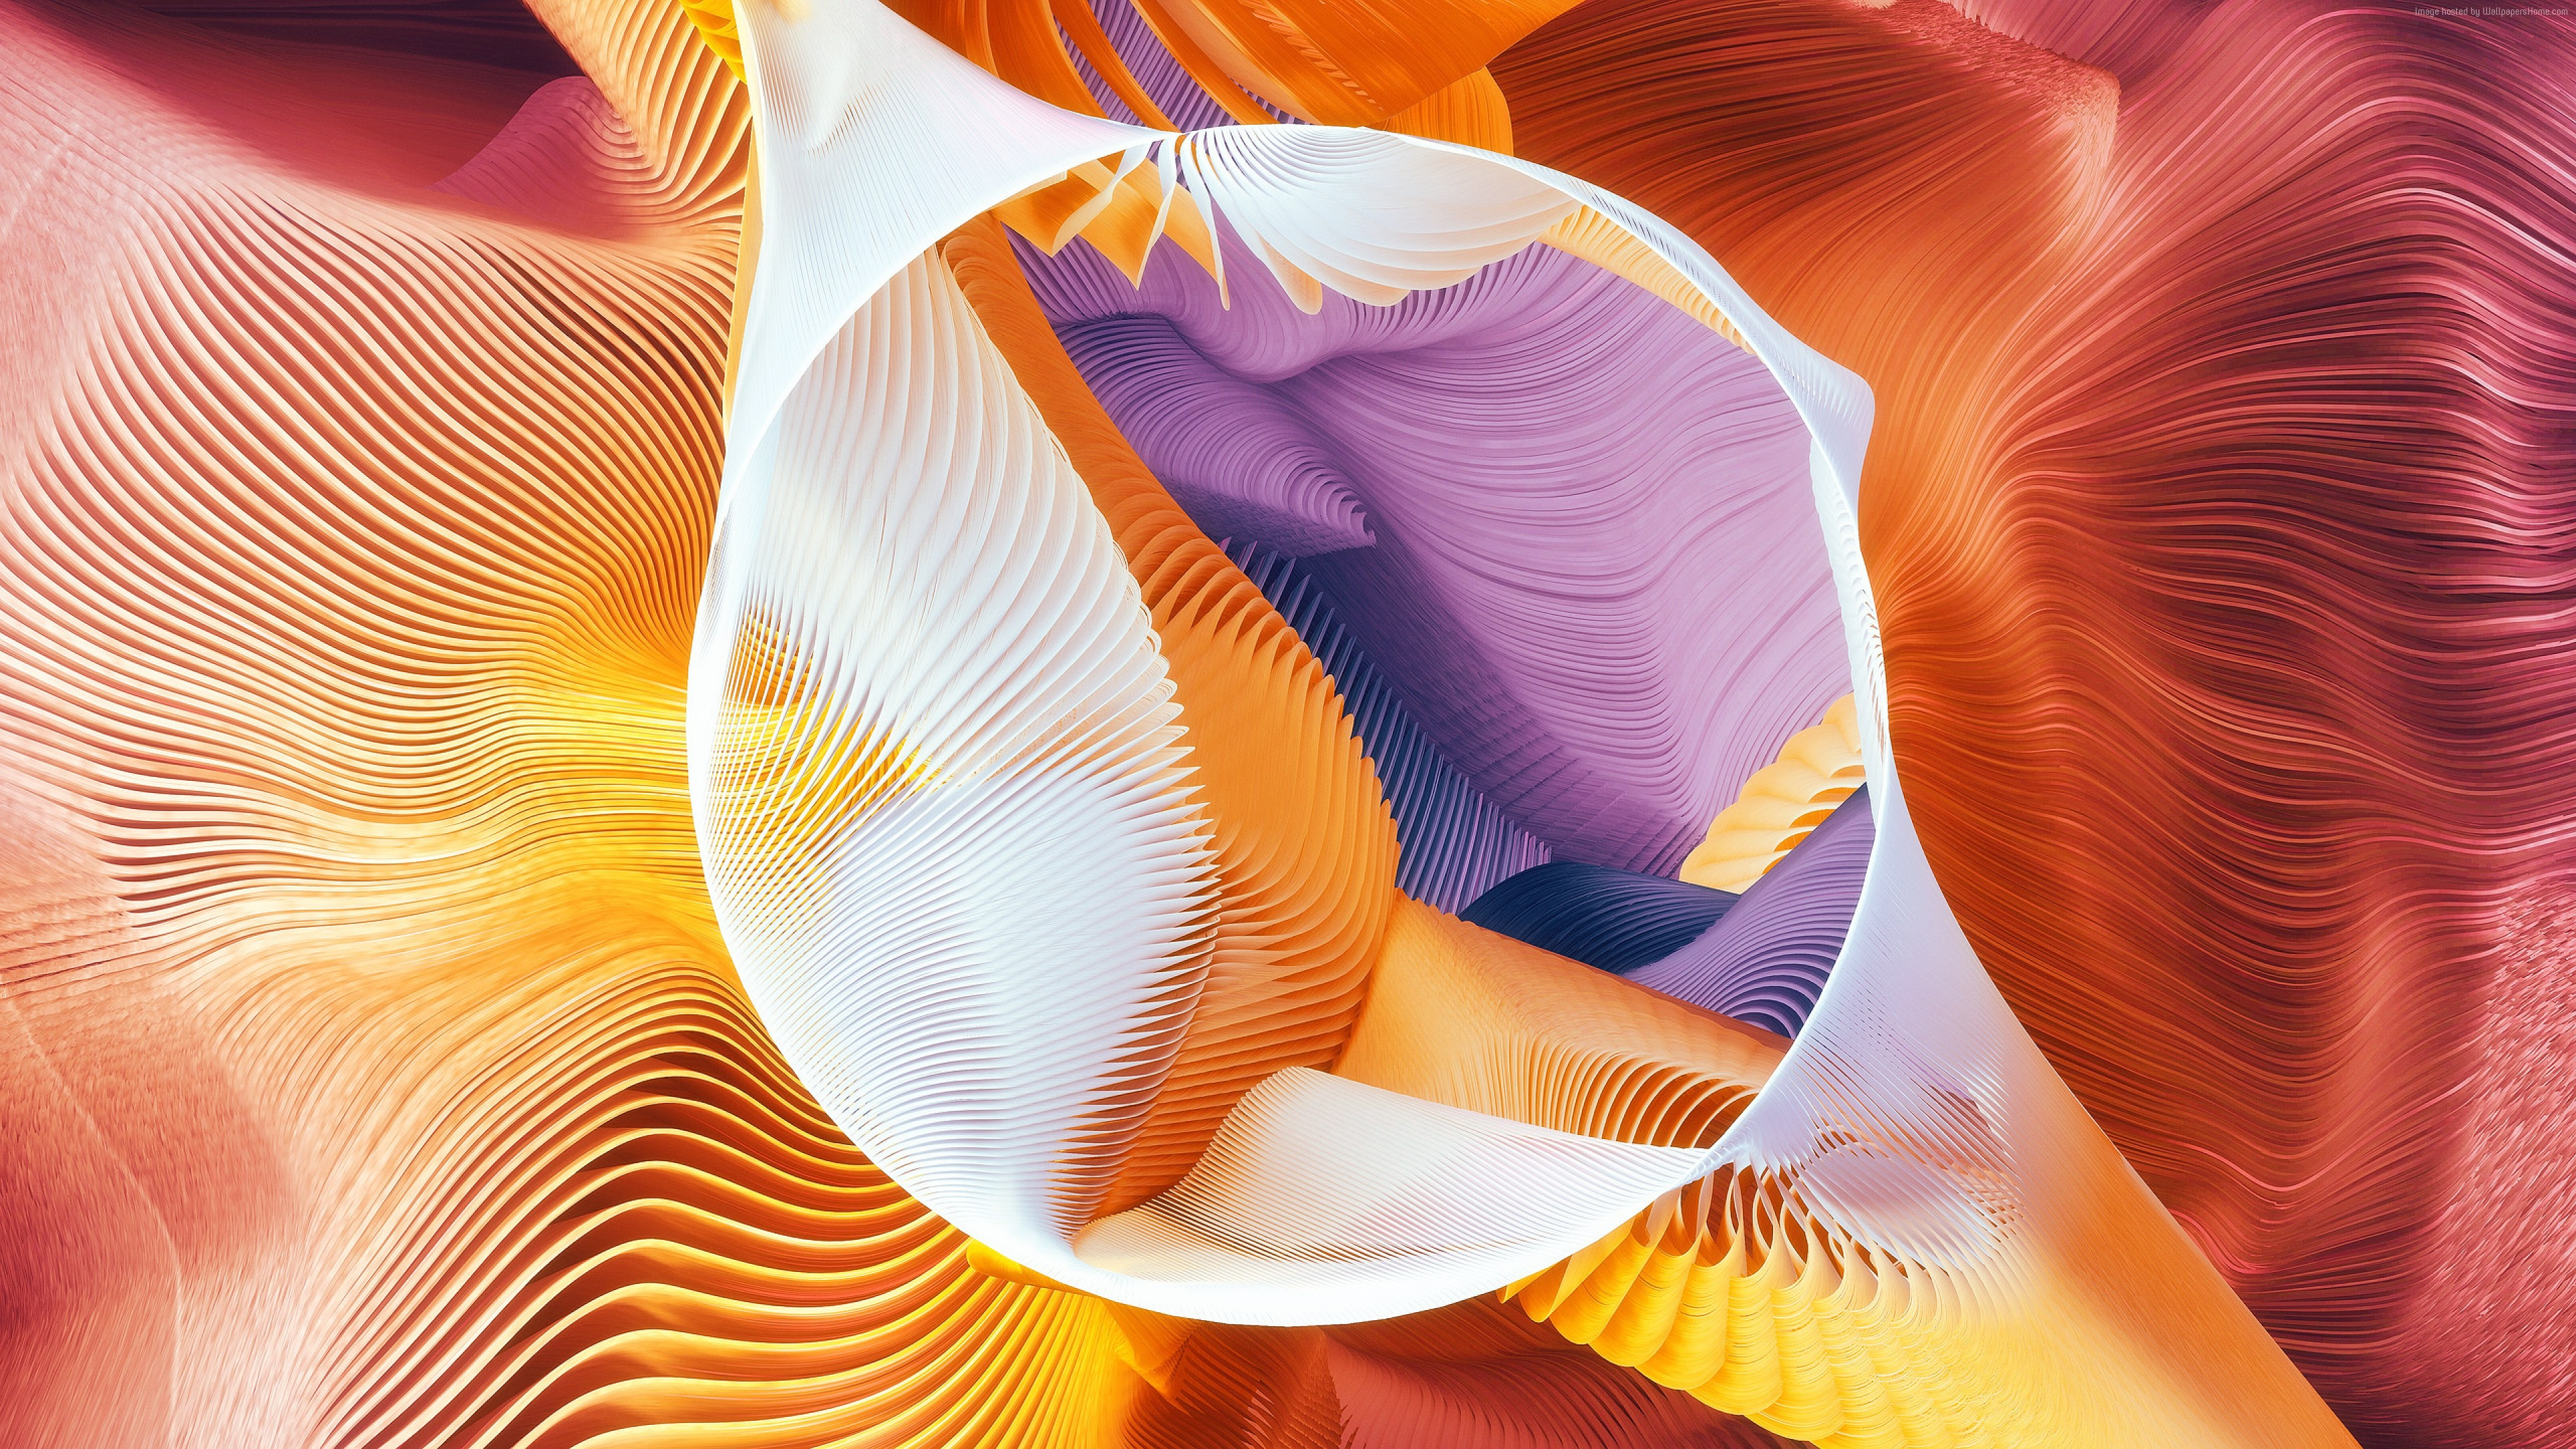 Wallpaper circle, abstract, 3D, colorful, Abstract